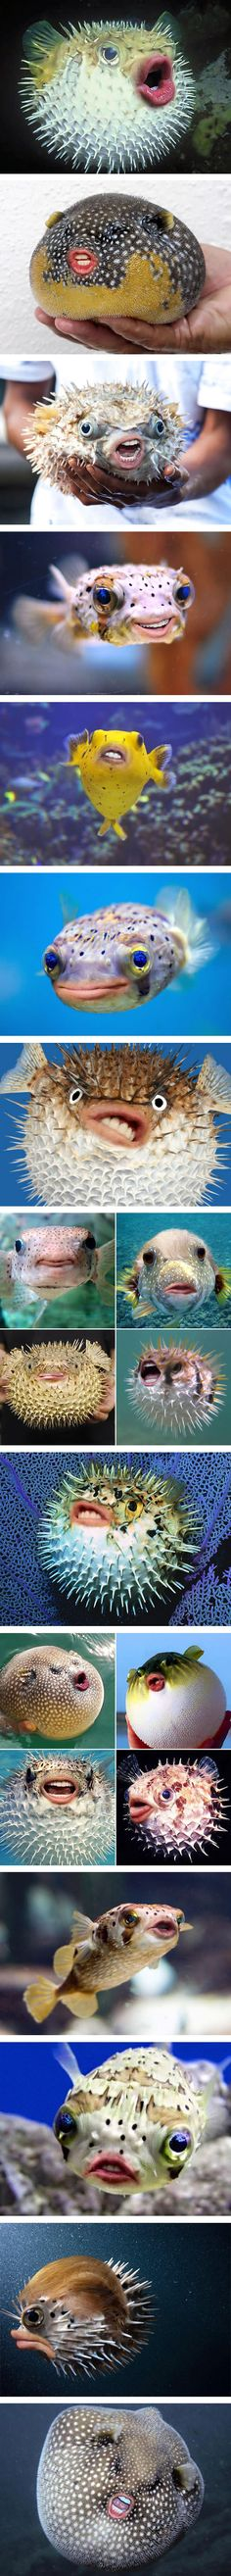 Puffer Fish With Trump's Mouth Is The New Important Thing